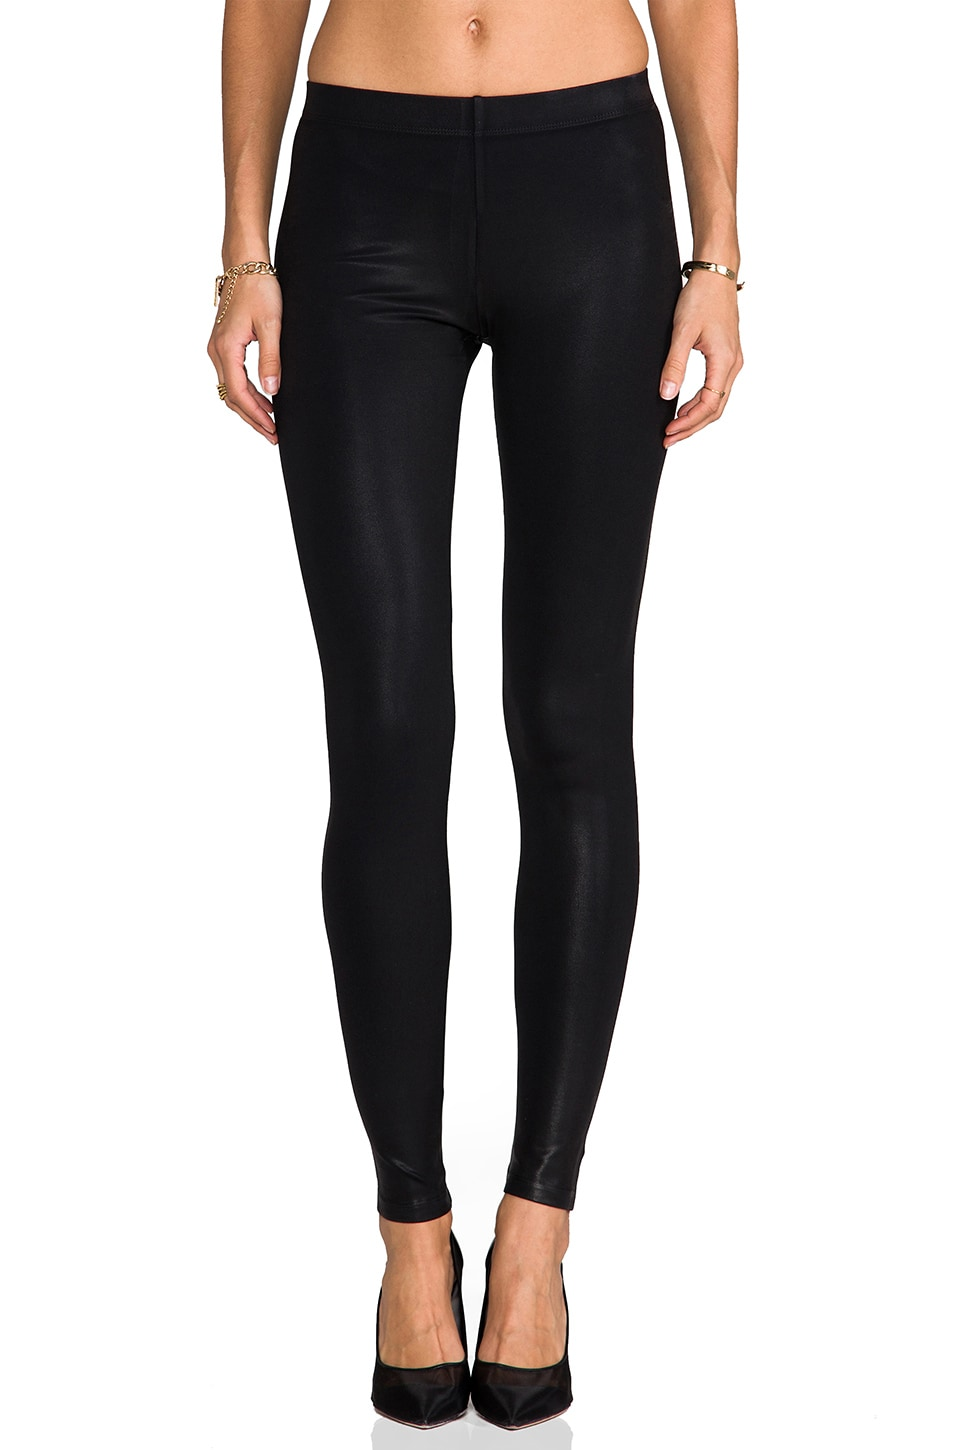 David Lerner Coated Classic Legging in Black